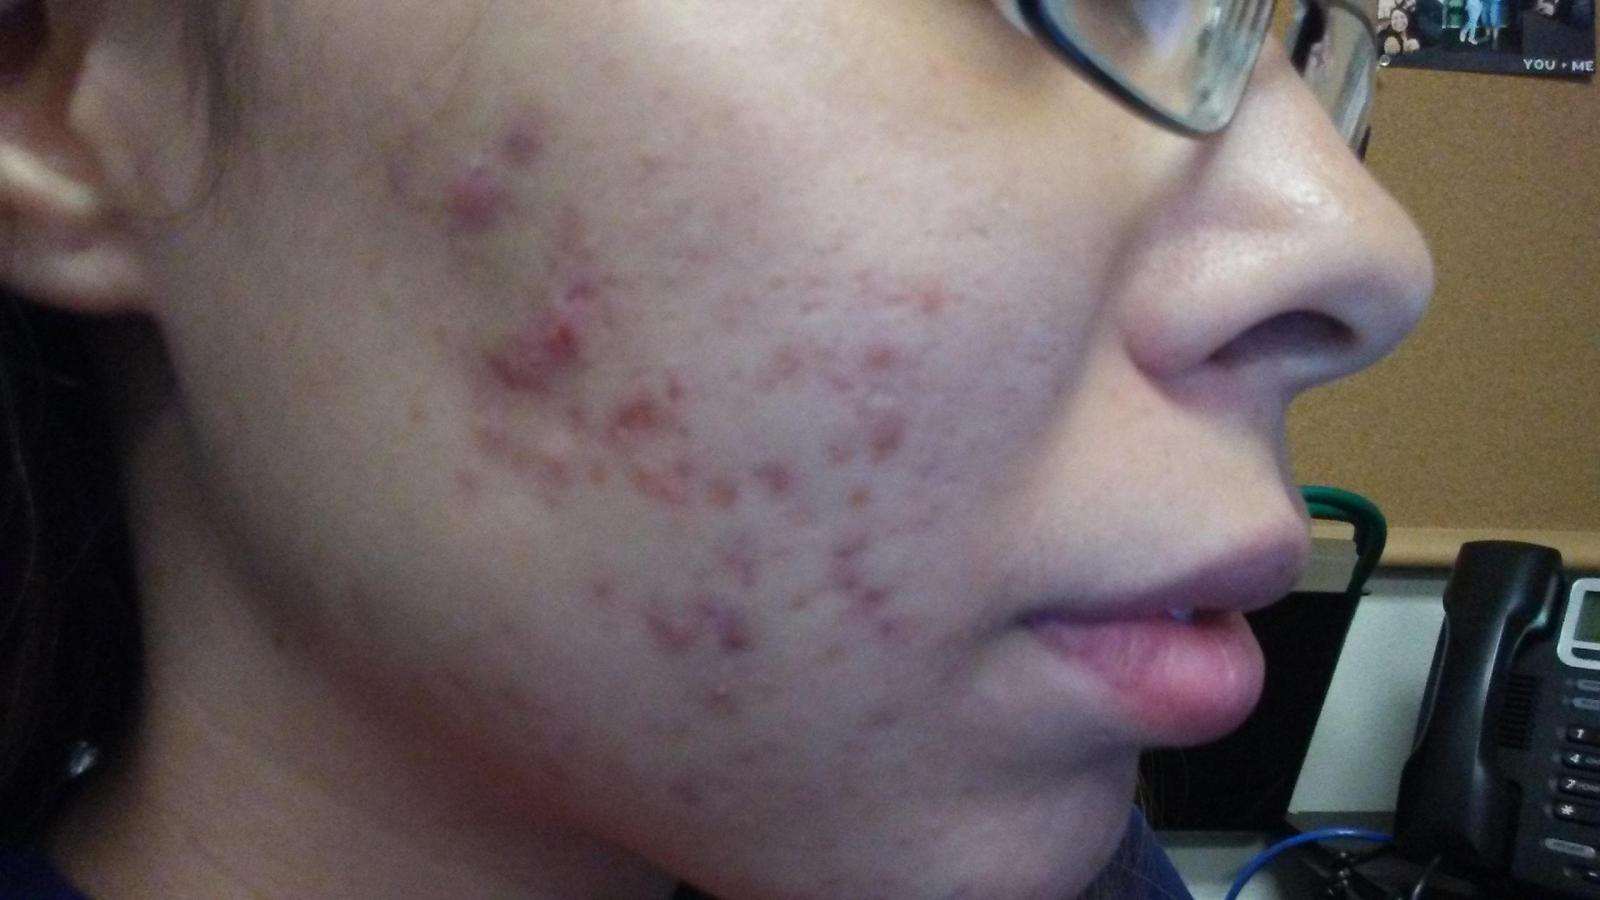 Right side 1 month on minocycline 100mg